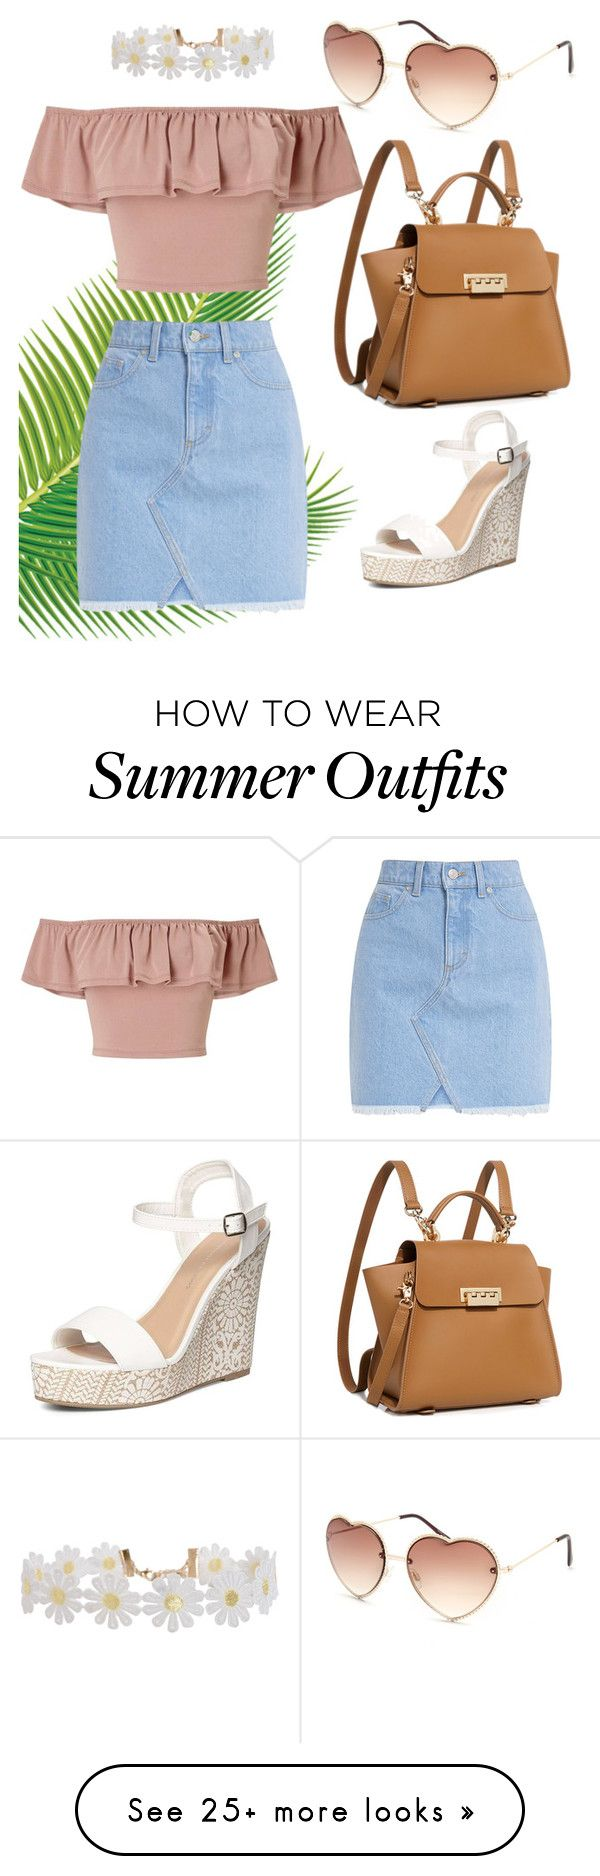 """""""Summer Boardwalk Outfit"""" by have-fun-with-it on Polyvore featuring Full Tilt, Miss Selfridge, Humble Chic, ZAC Zac Posen and Dorothy Perkins"""